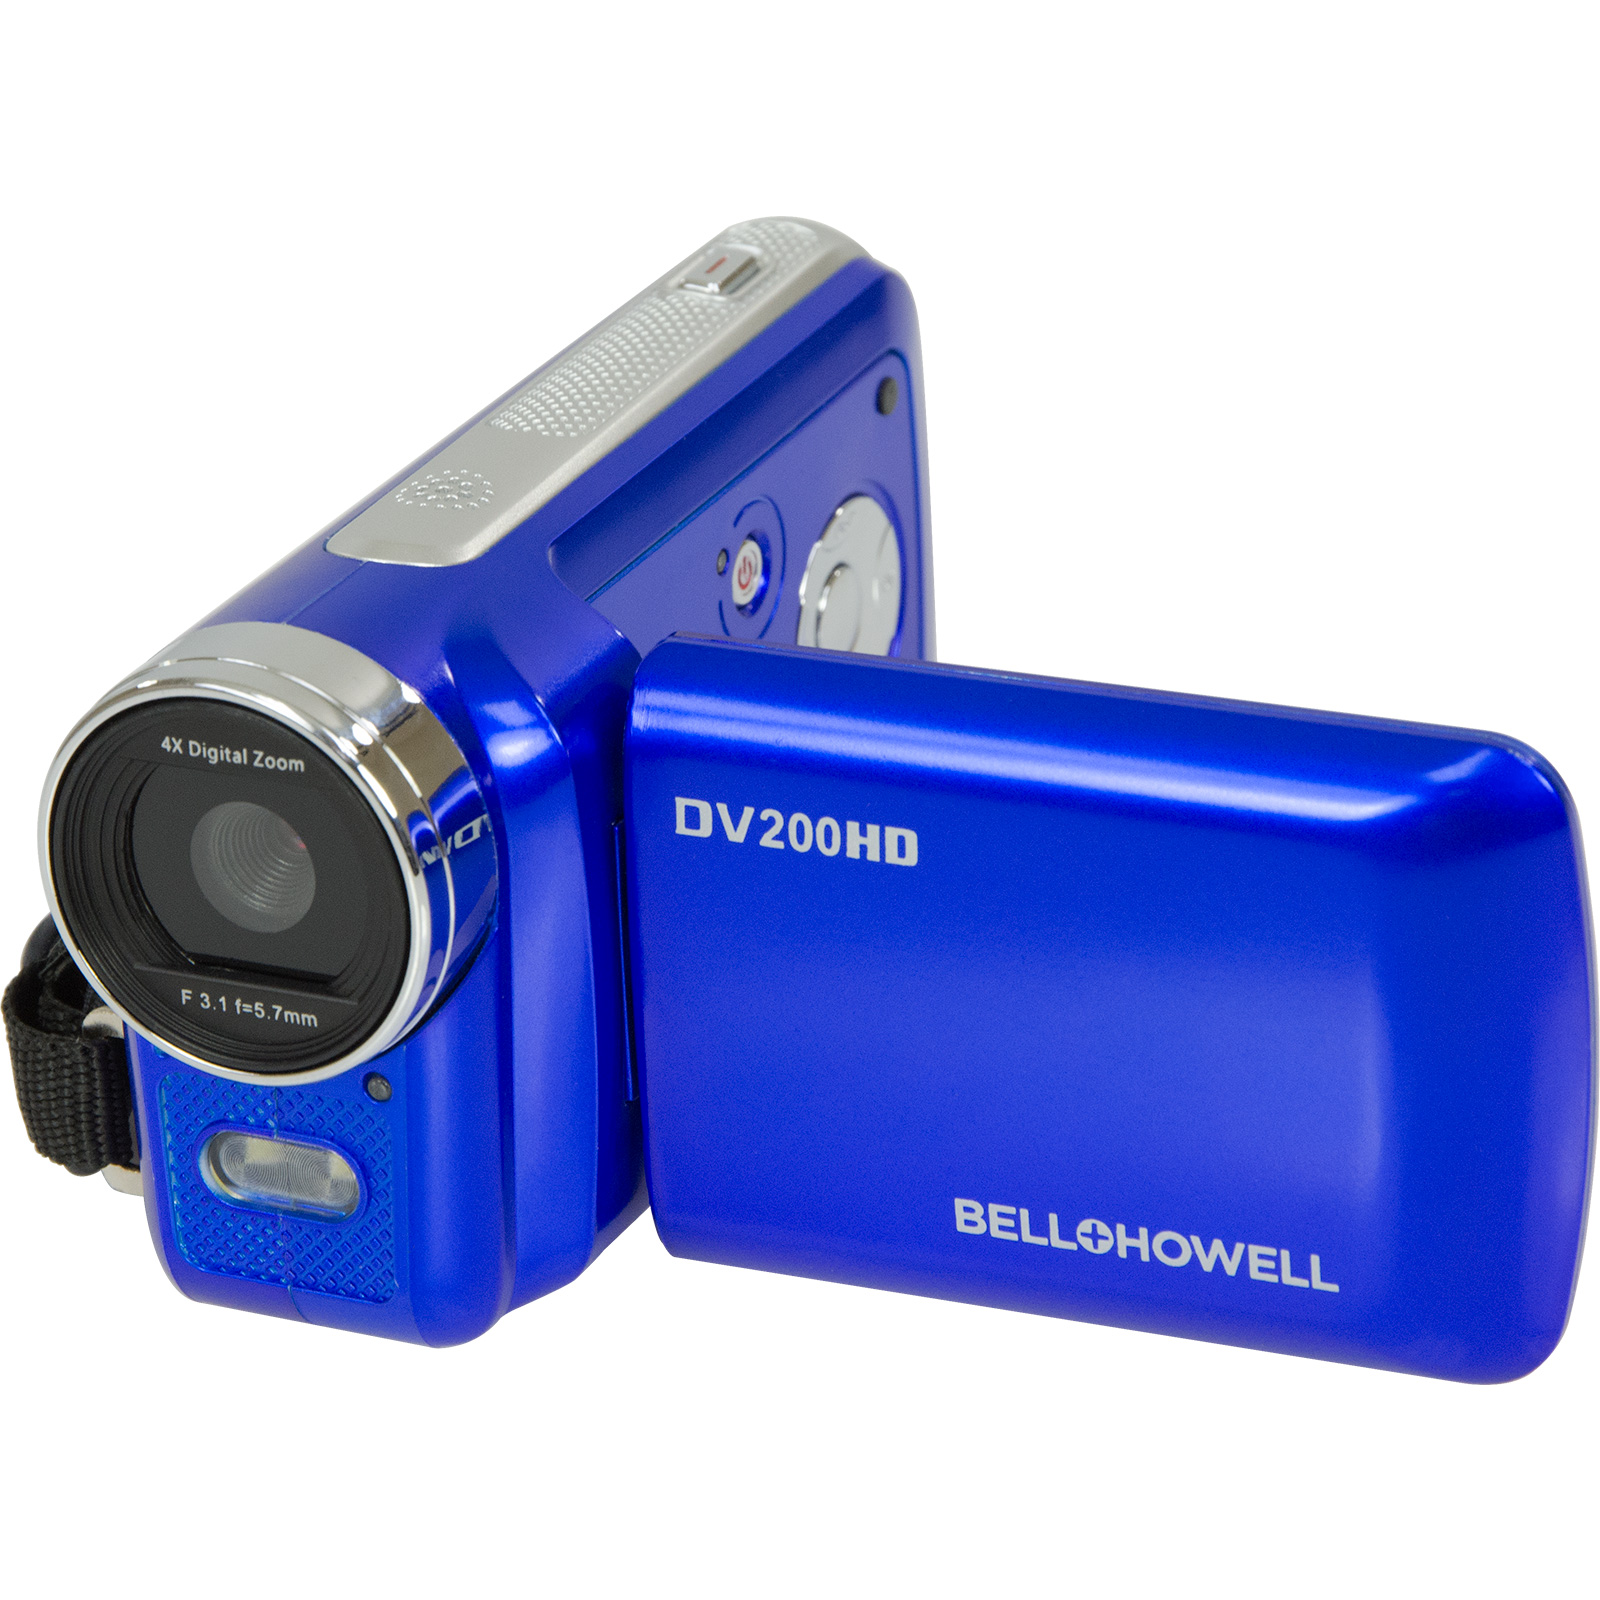 Bell & Howell DV200HD HD Video Camera Camcorder with Built-in Video Light (Blue)